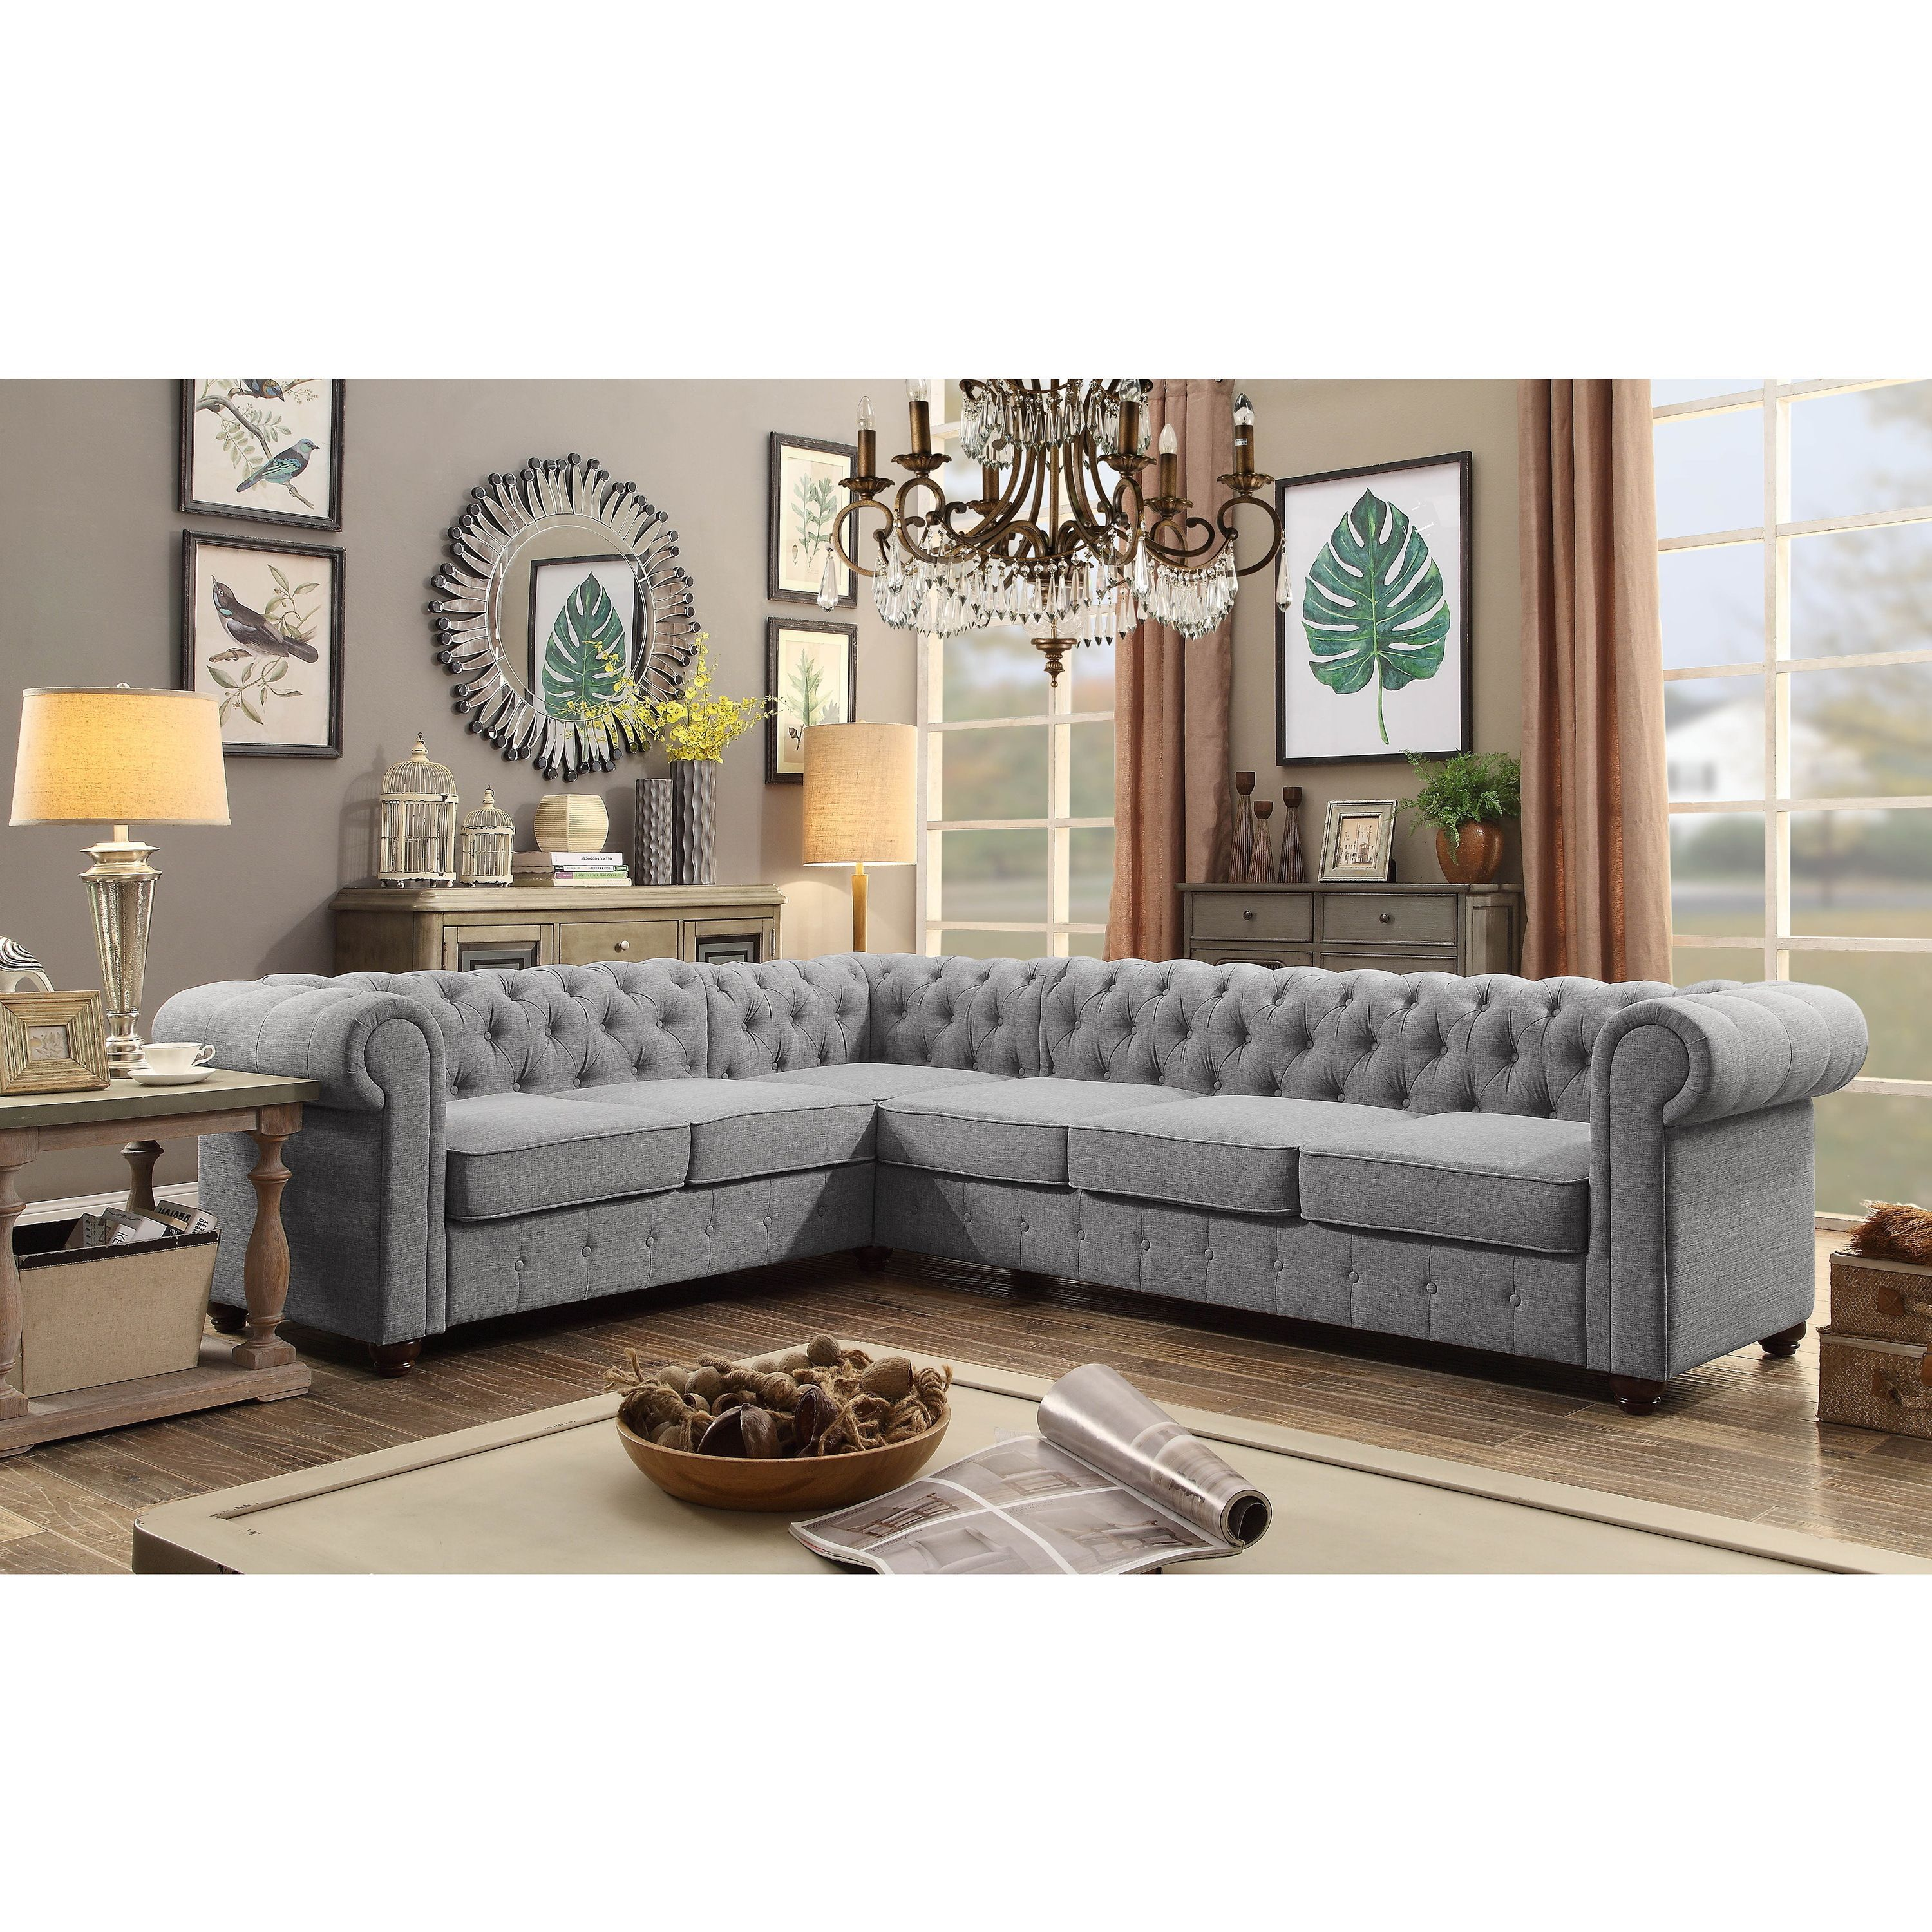 Provide Elegant Seating For Your Guests Atop This Moser Bay Furniture Sectional  Sofa.